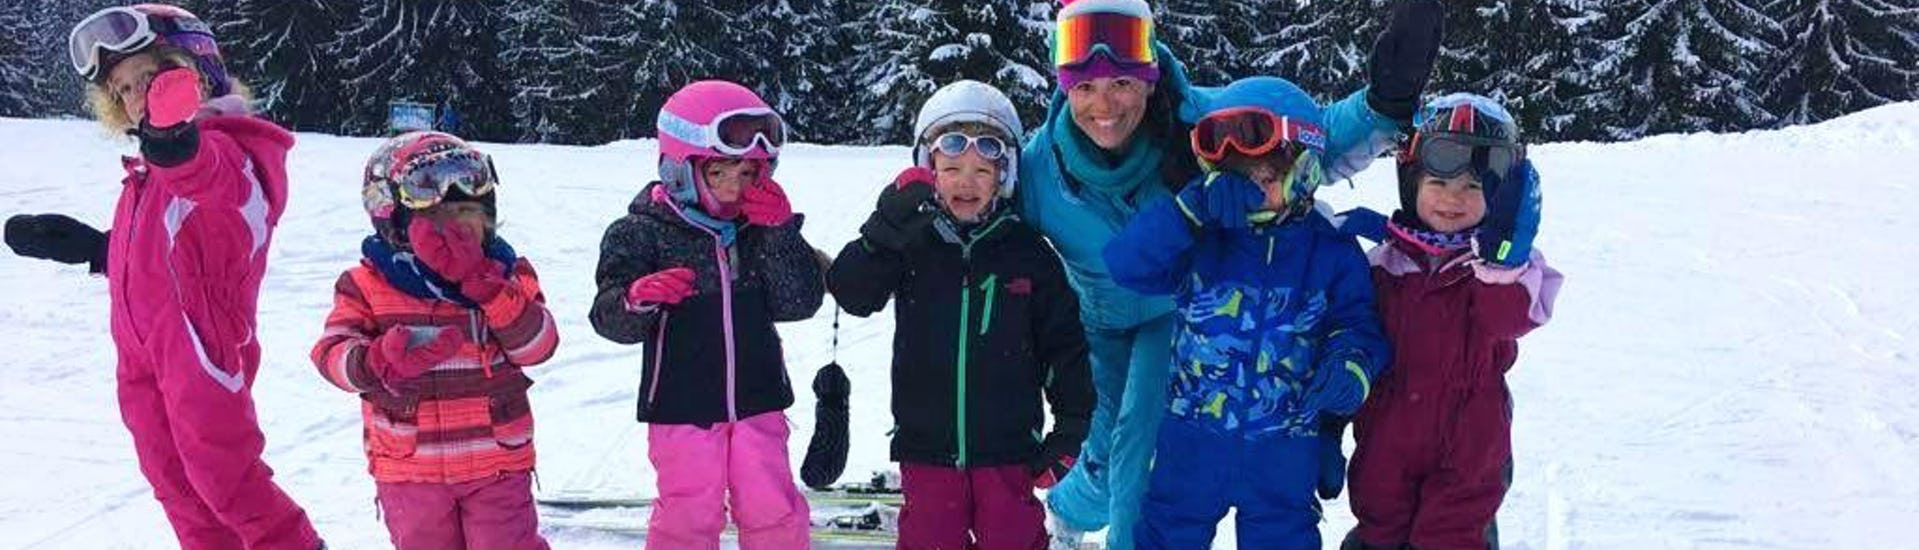 A group of kids is smiling at the camera in front of snowy trees together with their ski instructor from the ski school ESI Easy2Ride Morzine during their Kids Ski Lessons + Ski Pass (7-12 y.) - Full Day - Beginner.